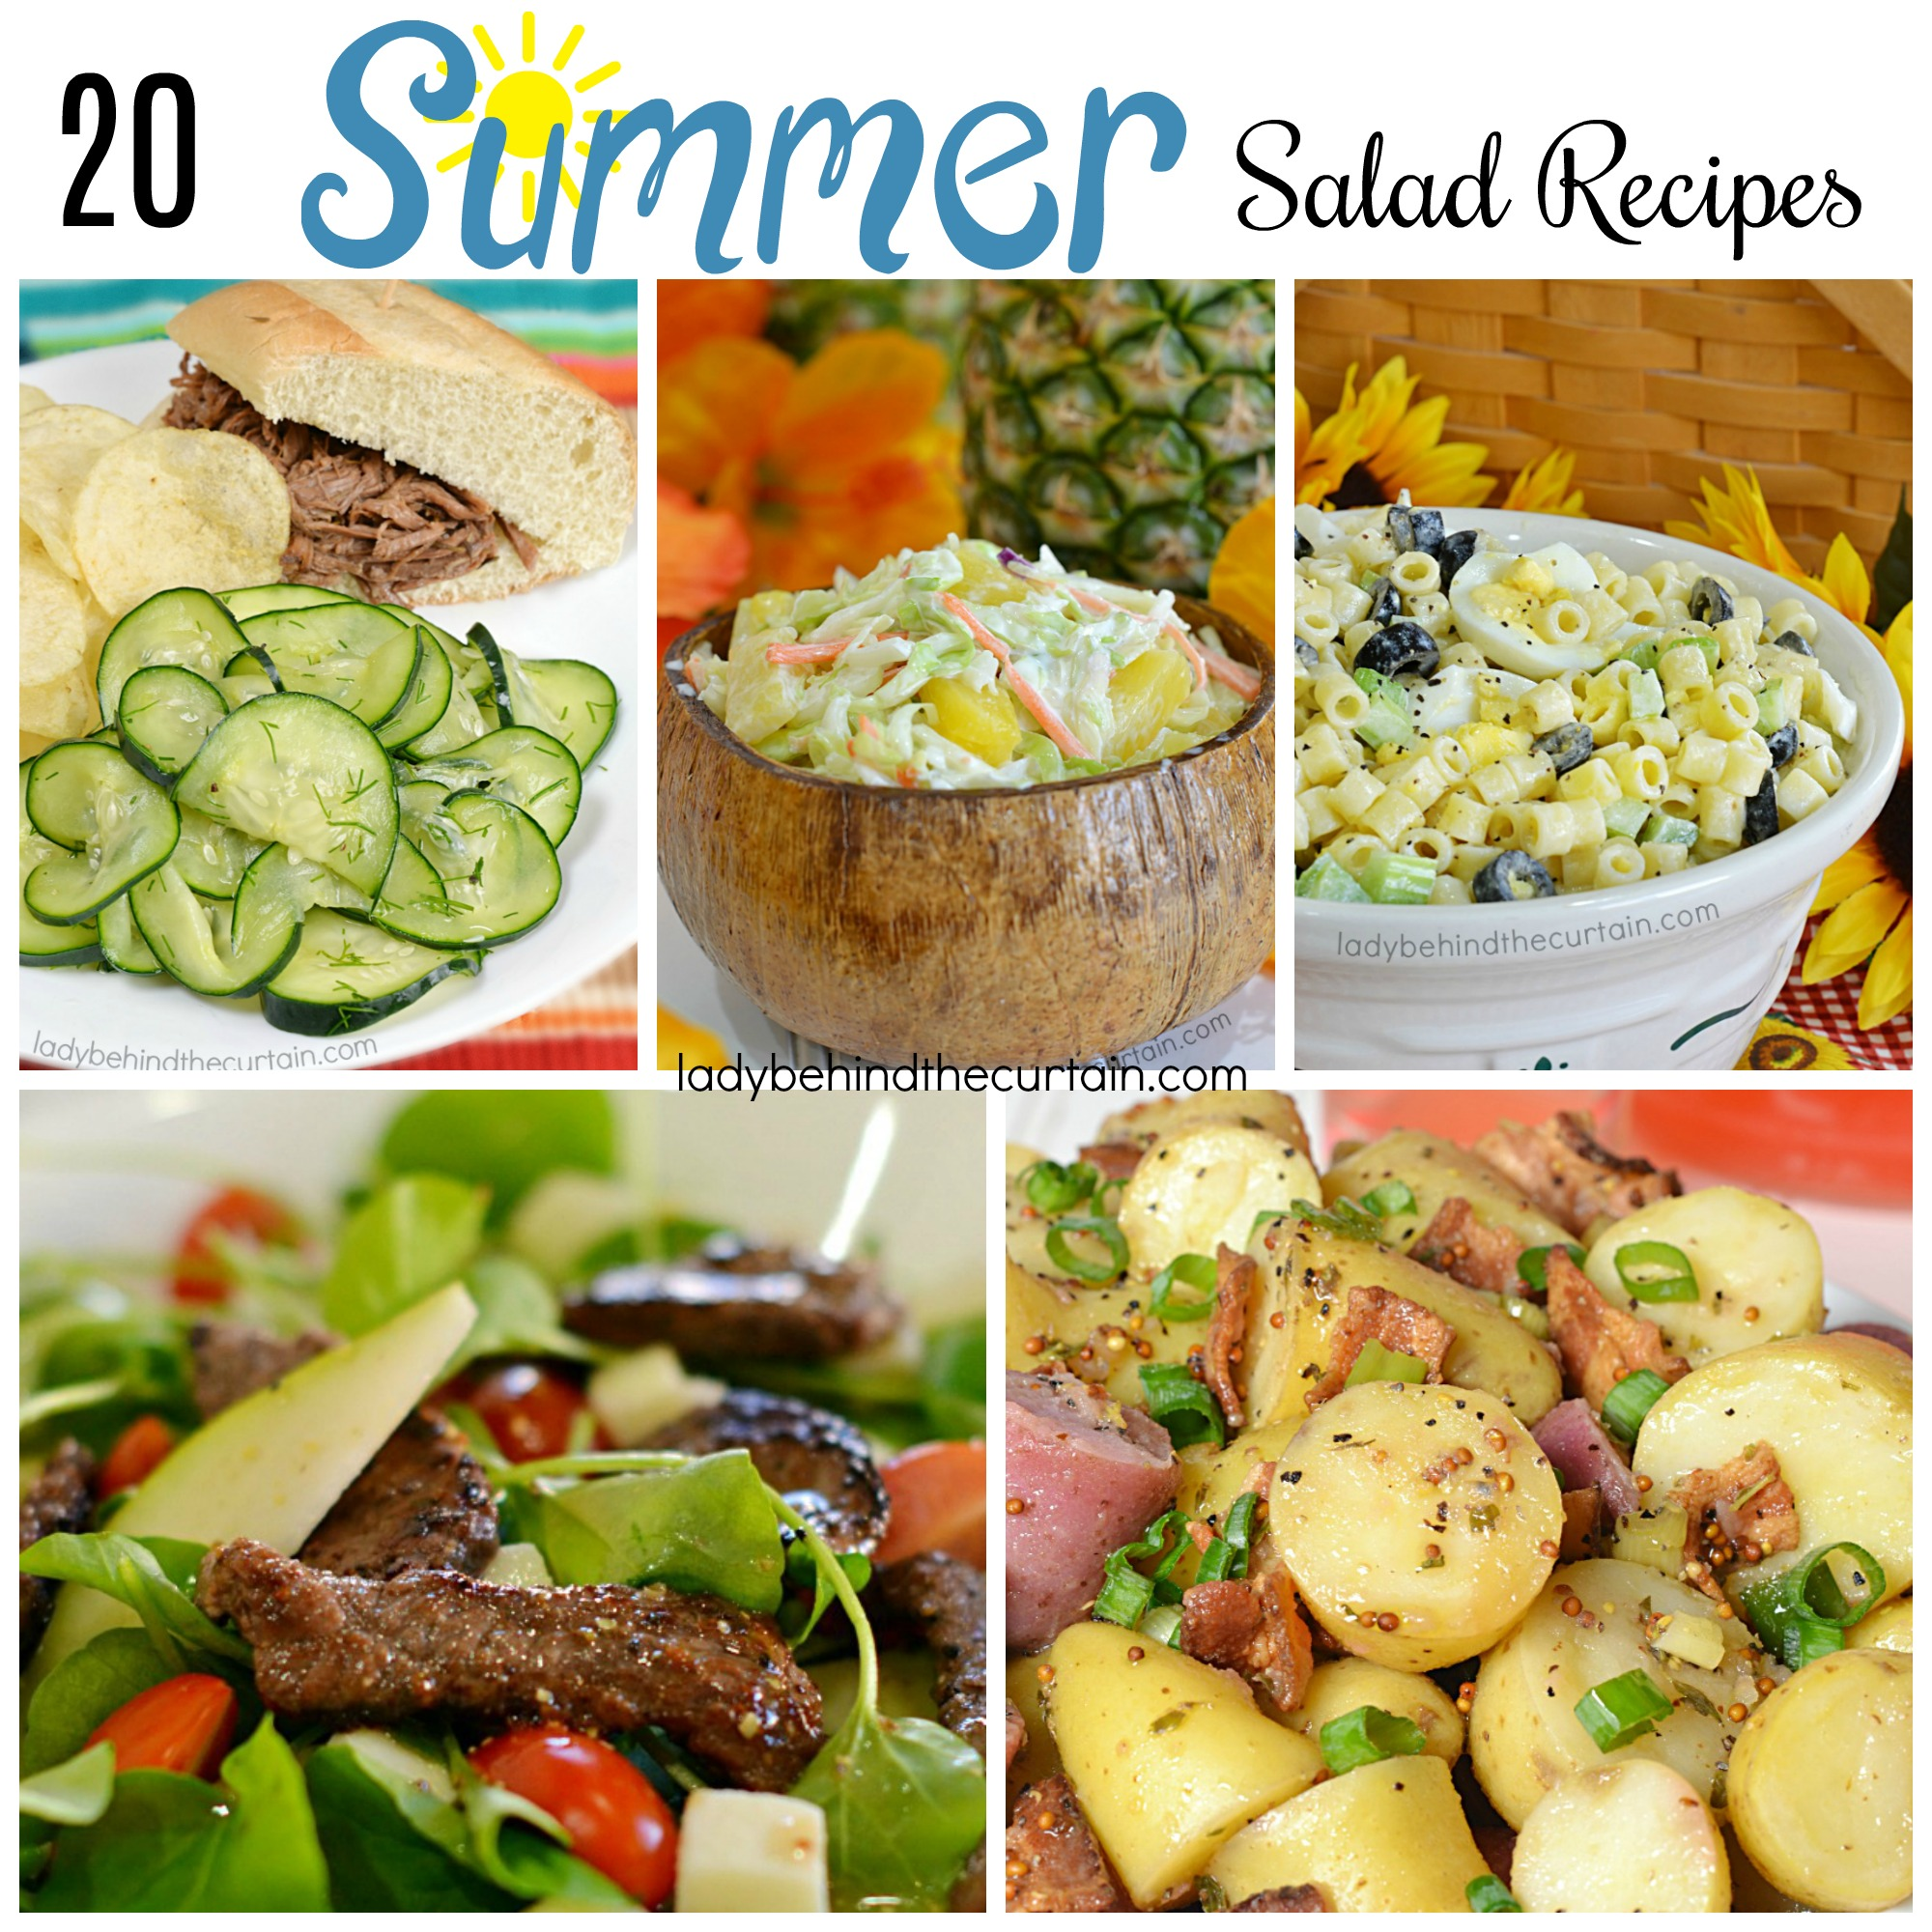 20 Summer Salad Recipes